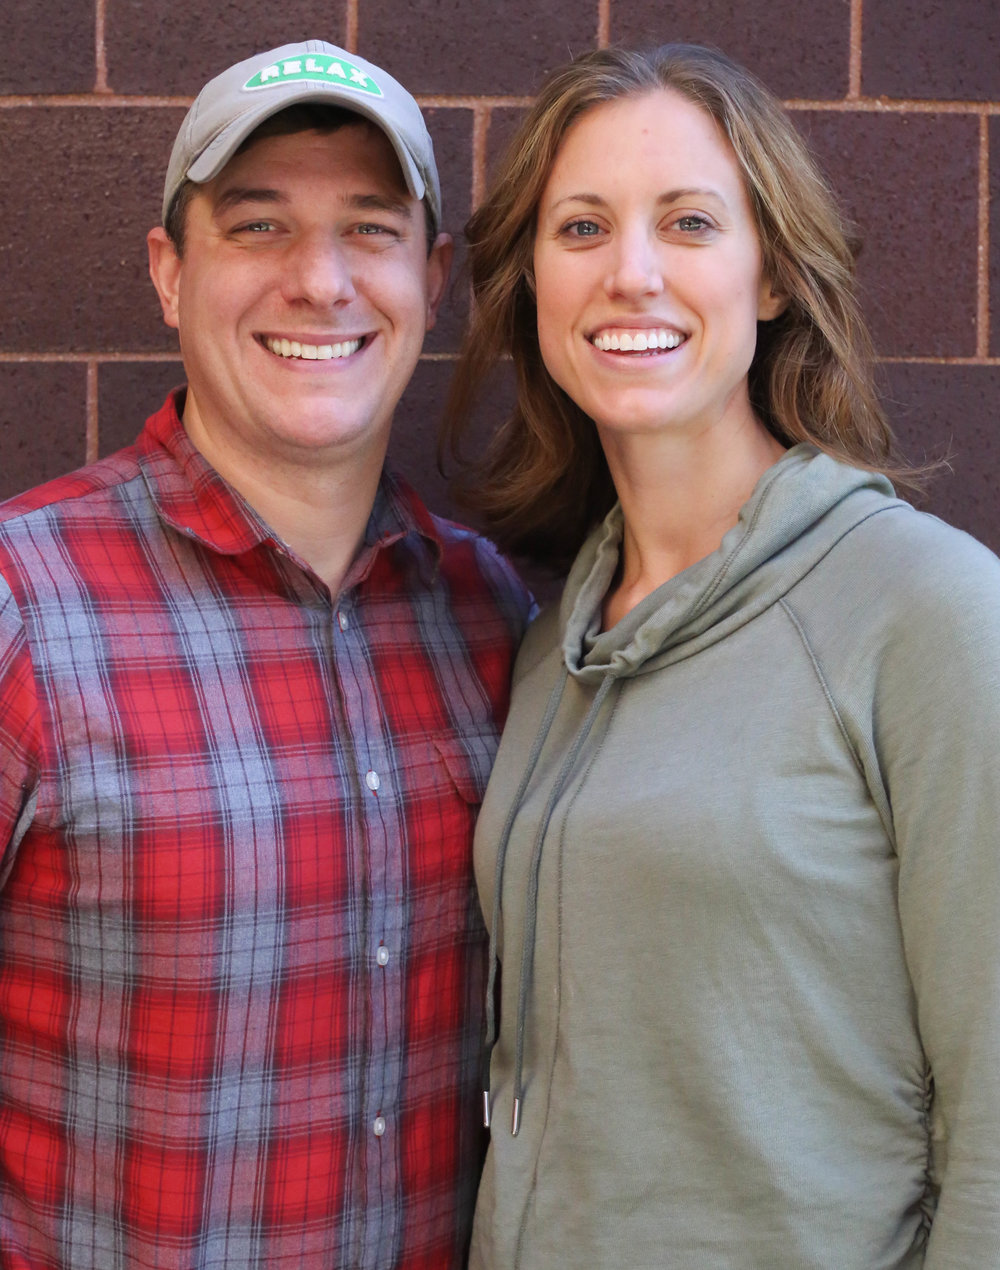 Brian and Katie Staker This group meets in Upper Arlington. The 2nd and 4th Thursday of the month at 7:00pm Email Katie for directions:Kathryn.staker@gmail.com